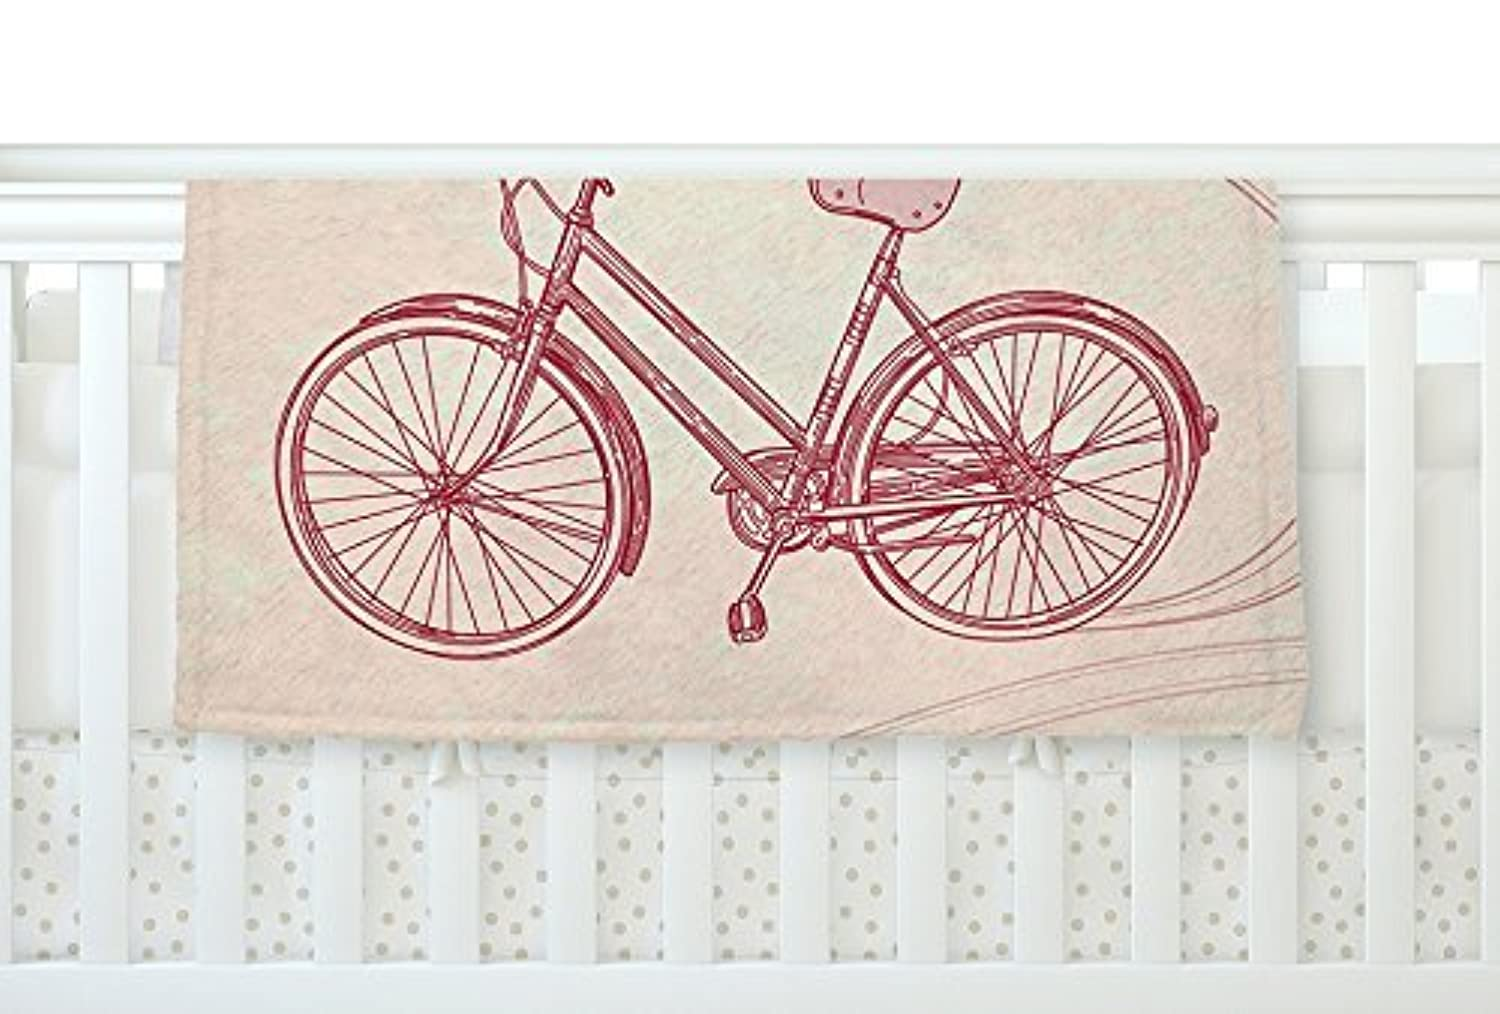 KESS InHouse Sam Posnick Bicycle Fleece Baby Blanket 40 x 30 [並行輸入品]